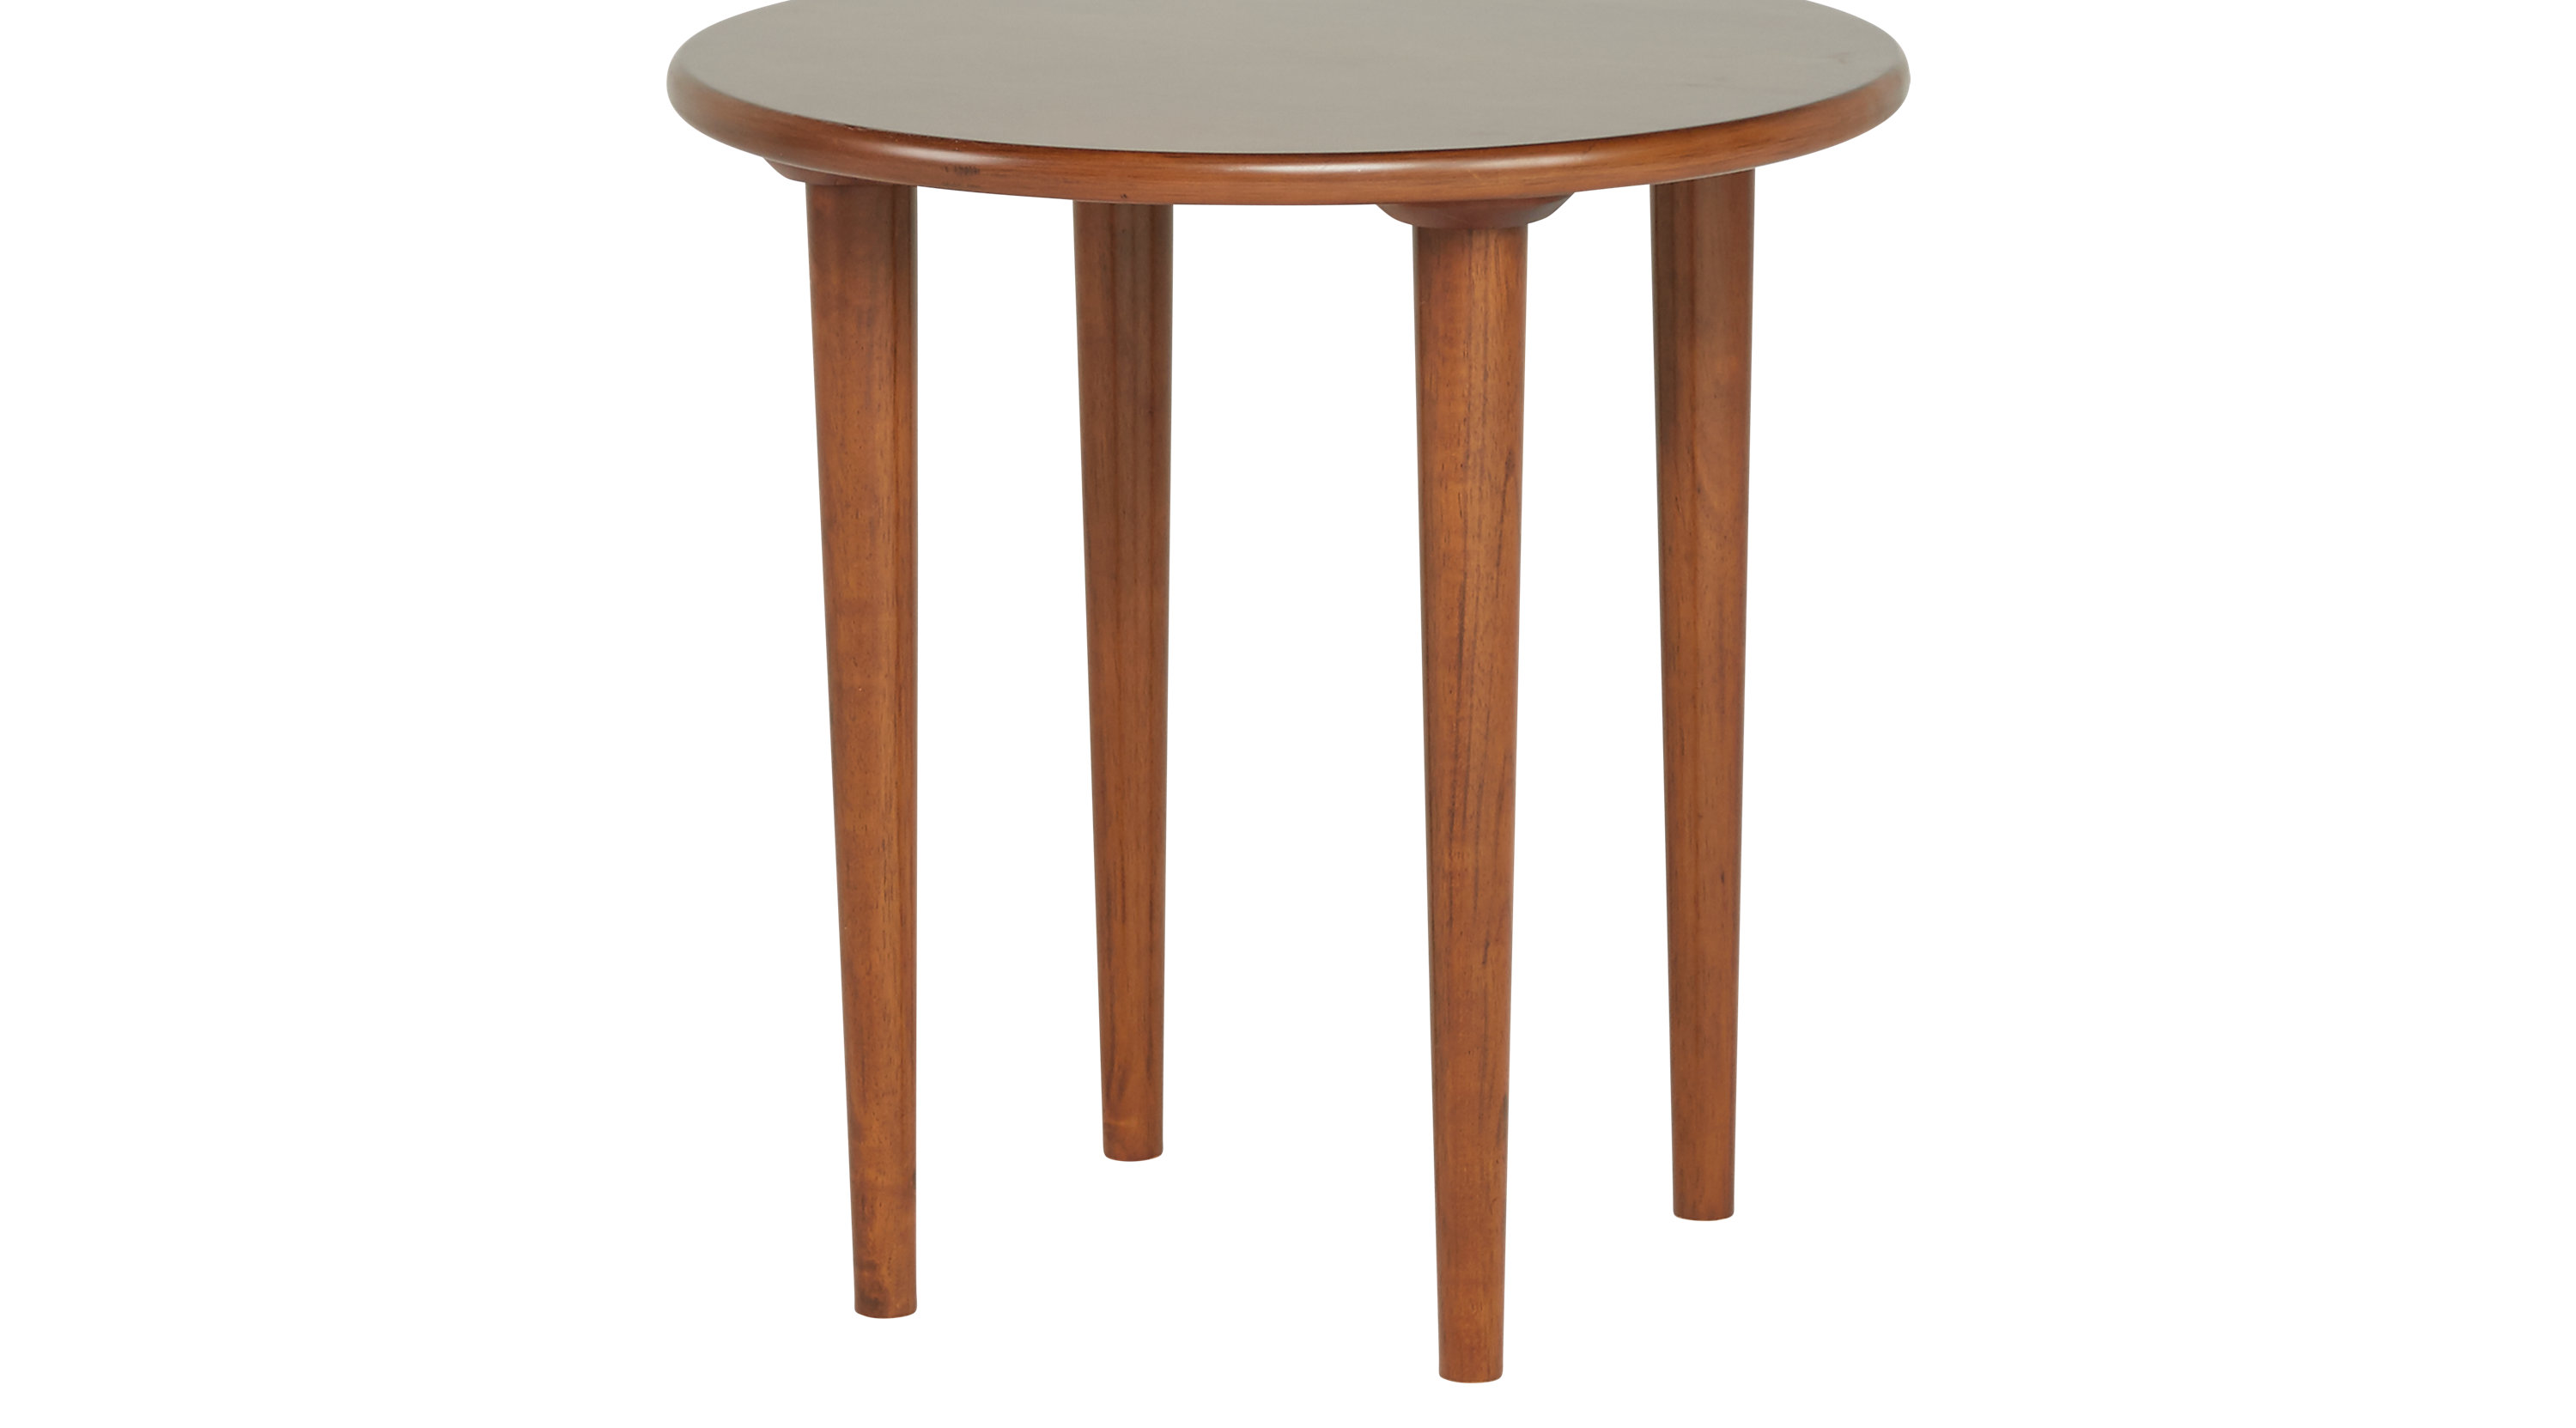 winthrop cherry end table round contemporary homesense dressers universal dining room furniture kmart free shipping small painted coffee tables clearance accent antique kidney